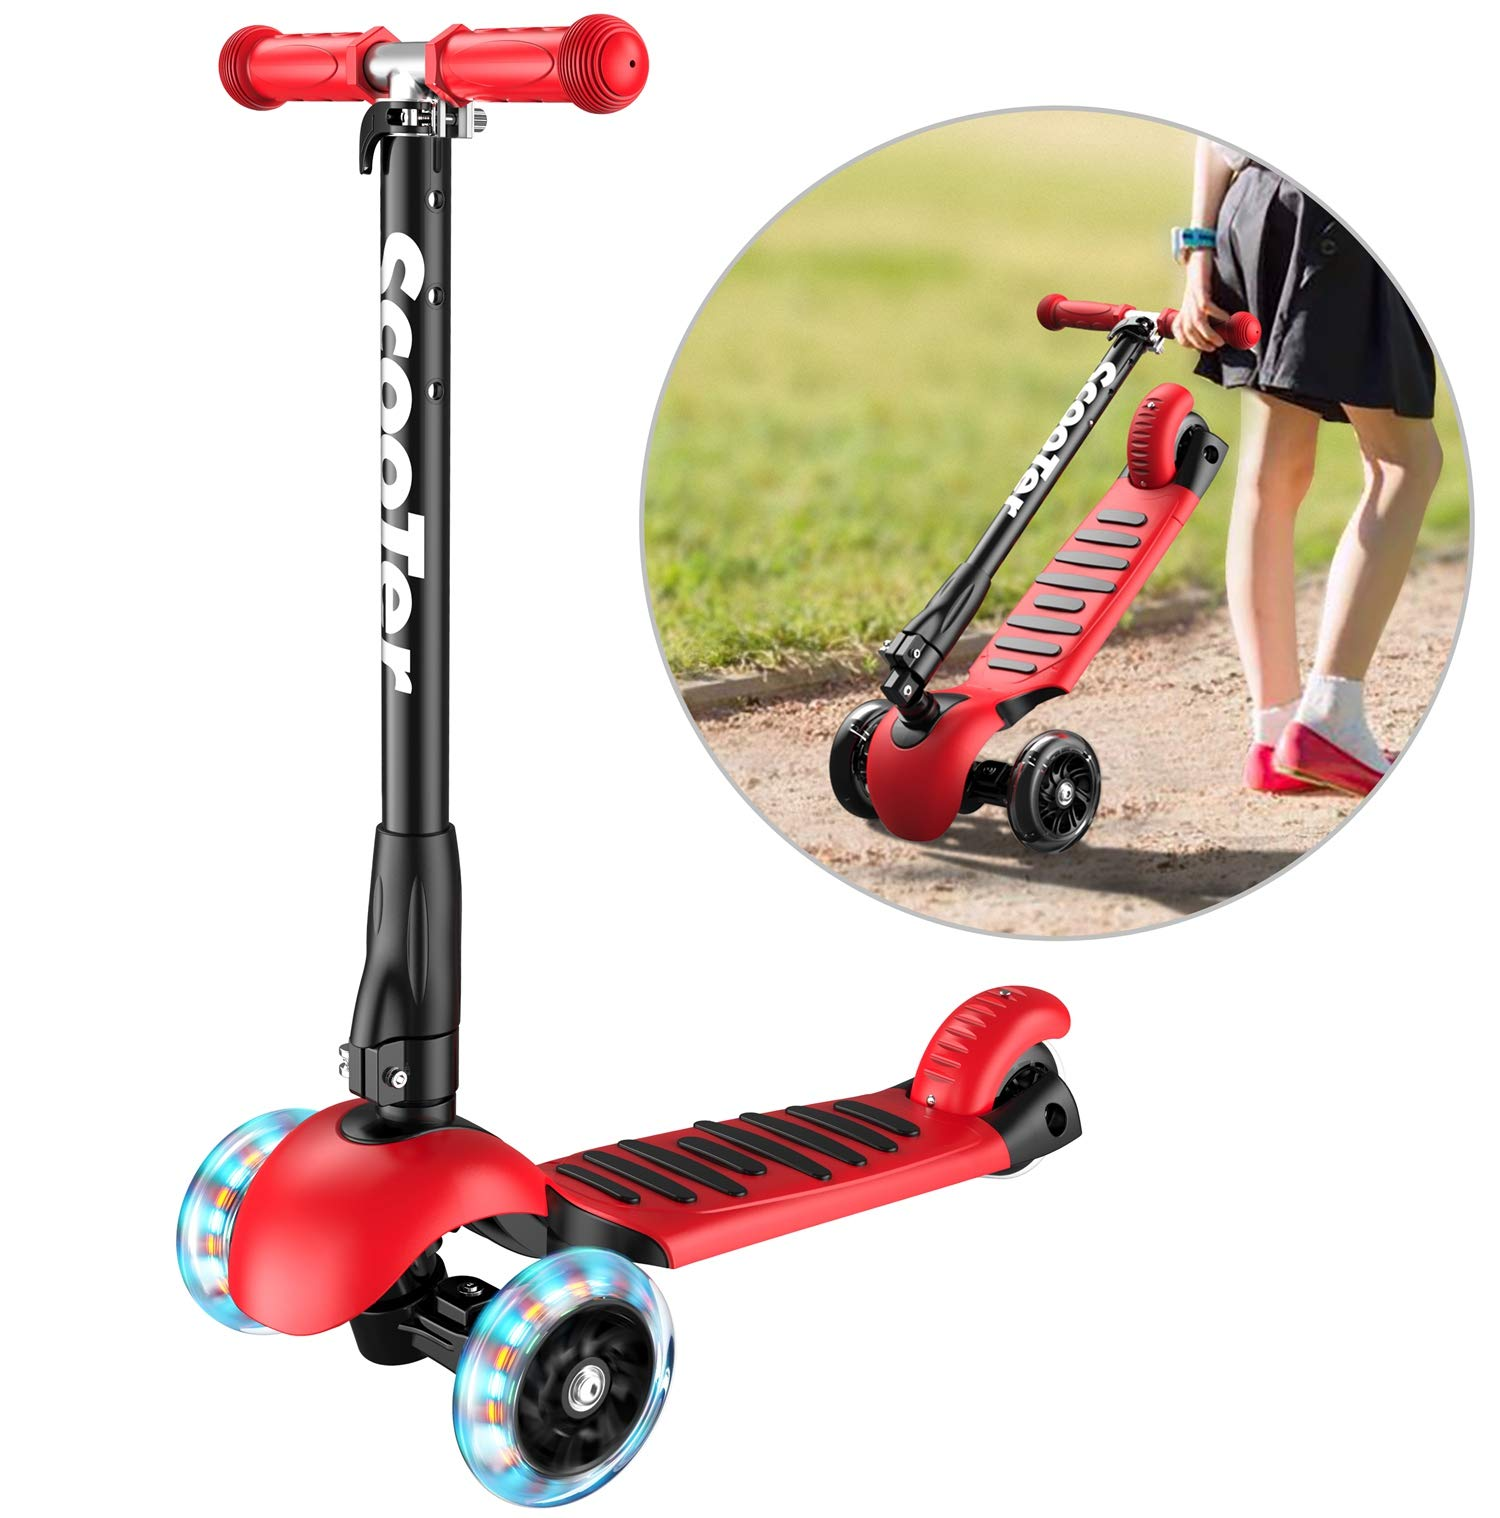 Banne Scooter Adjustable Flashing Scooters